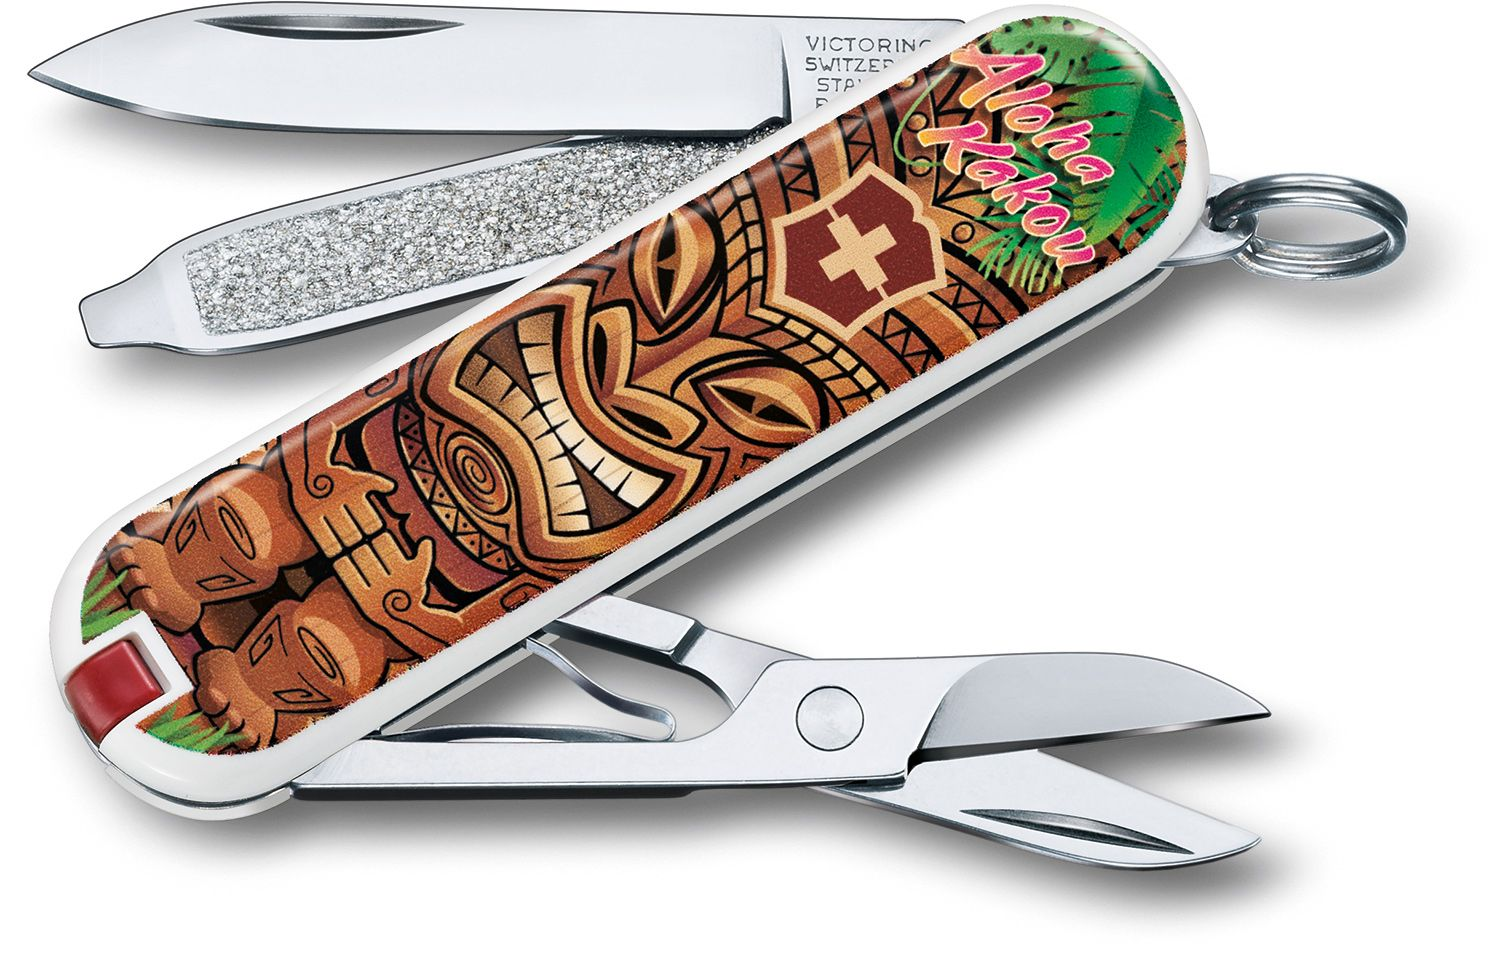 Victorinox Swiss Army Contest Classic SD Limited Edition 2018 Multi-Tool, Aloha Kakou, 2.25 inch Closed